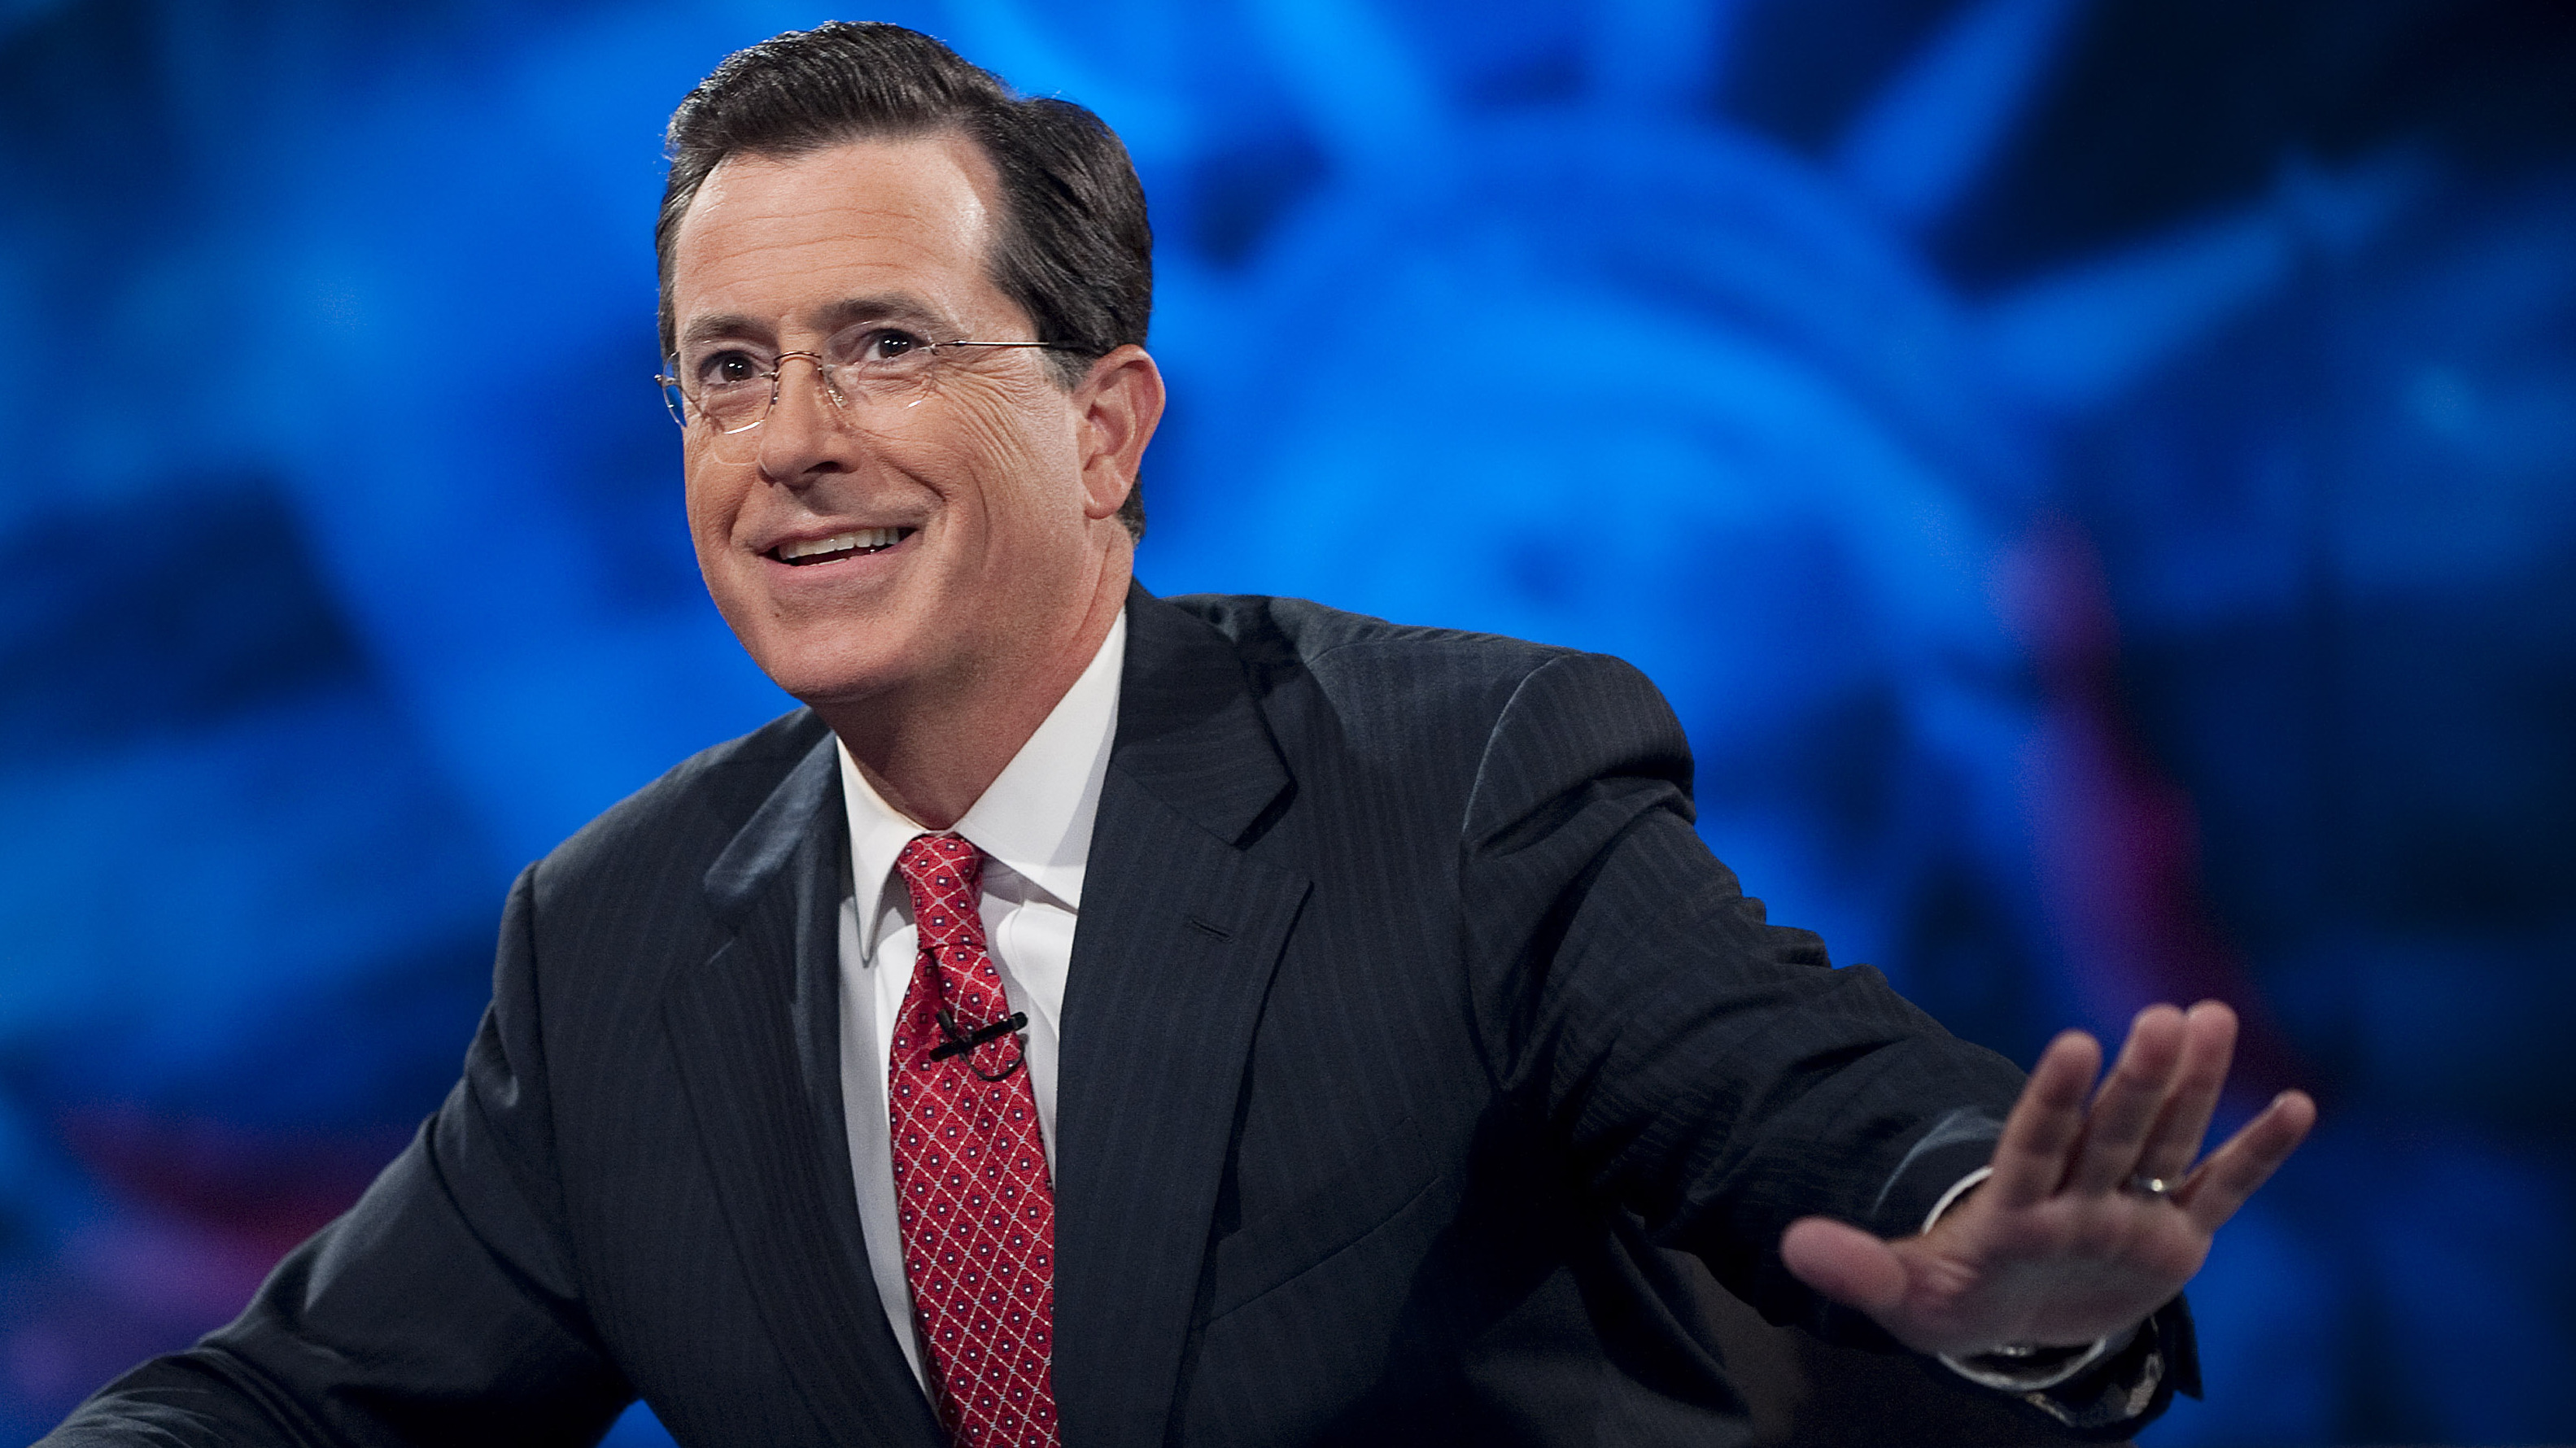 3166x1780px Stephen Colbert Wallpapers 3166x1780